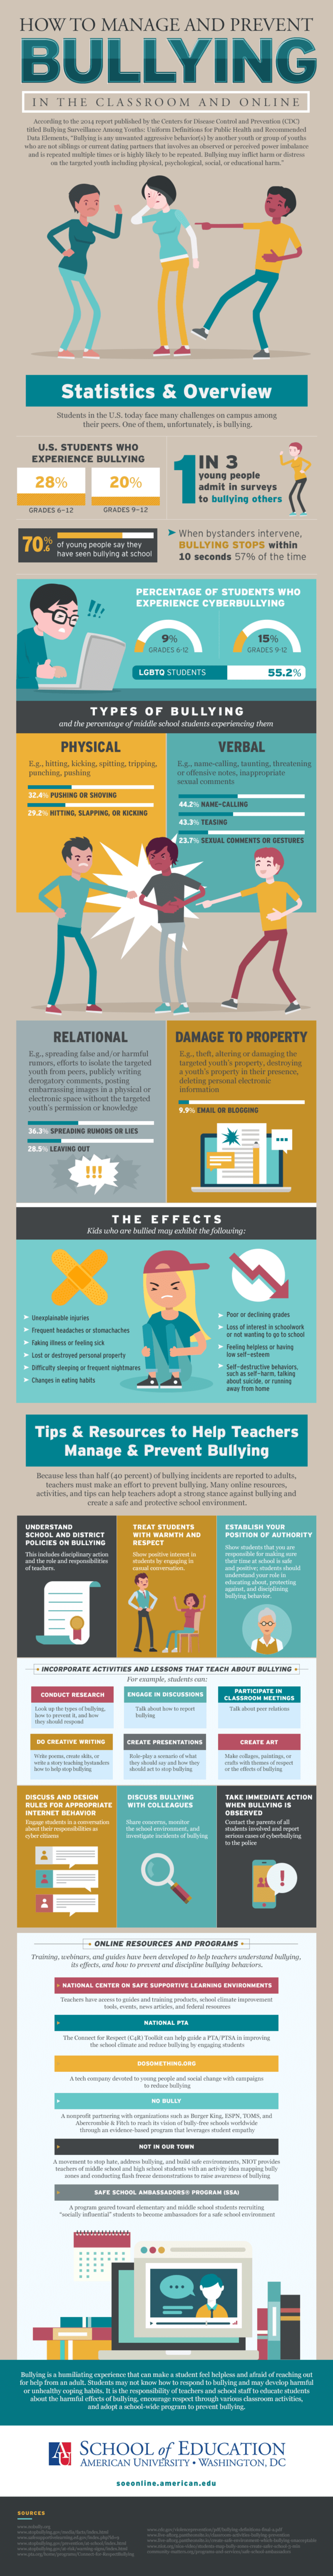 Preventing online and class bullying (Infographic)